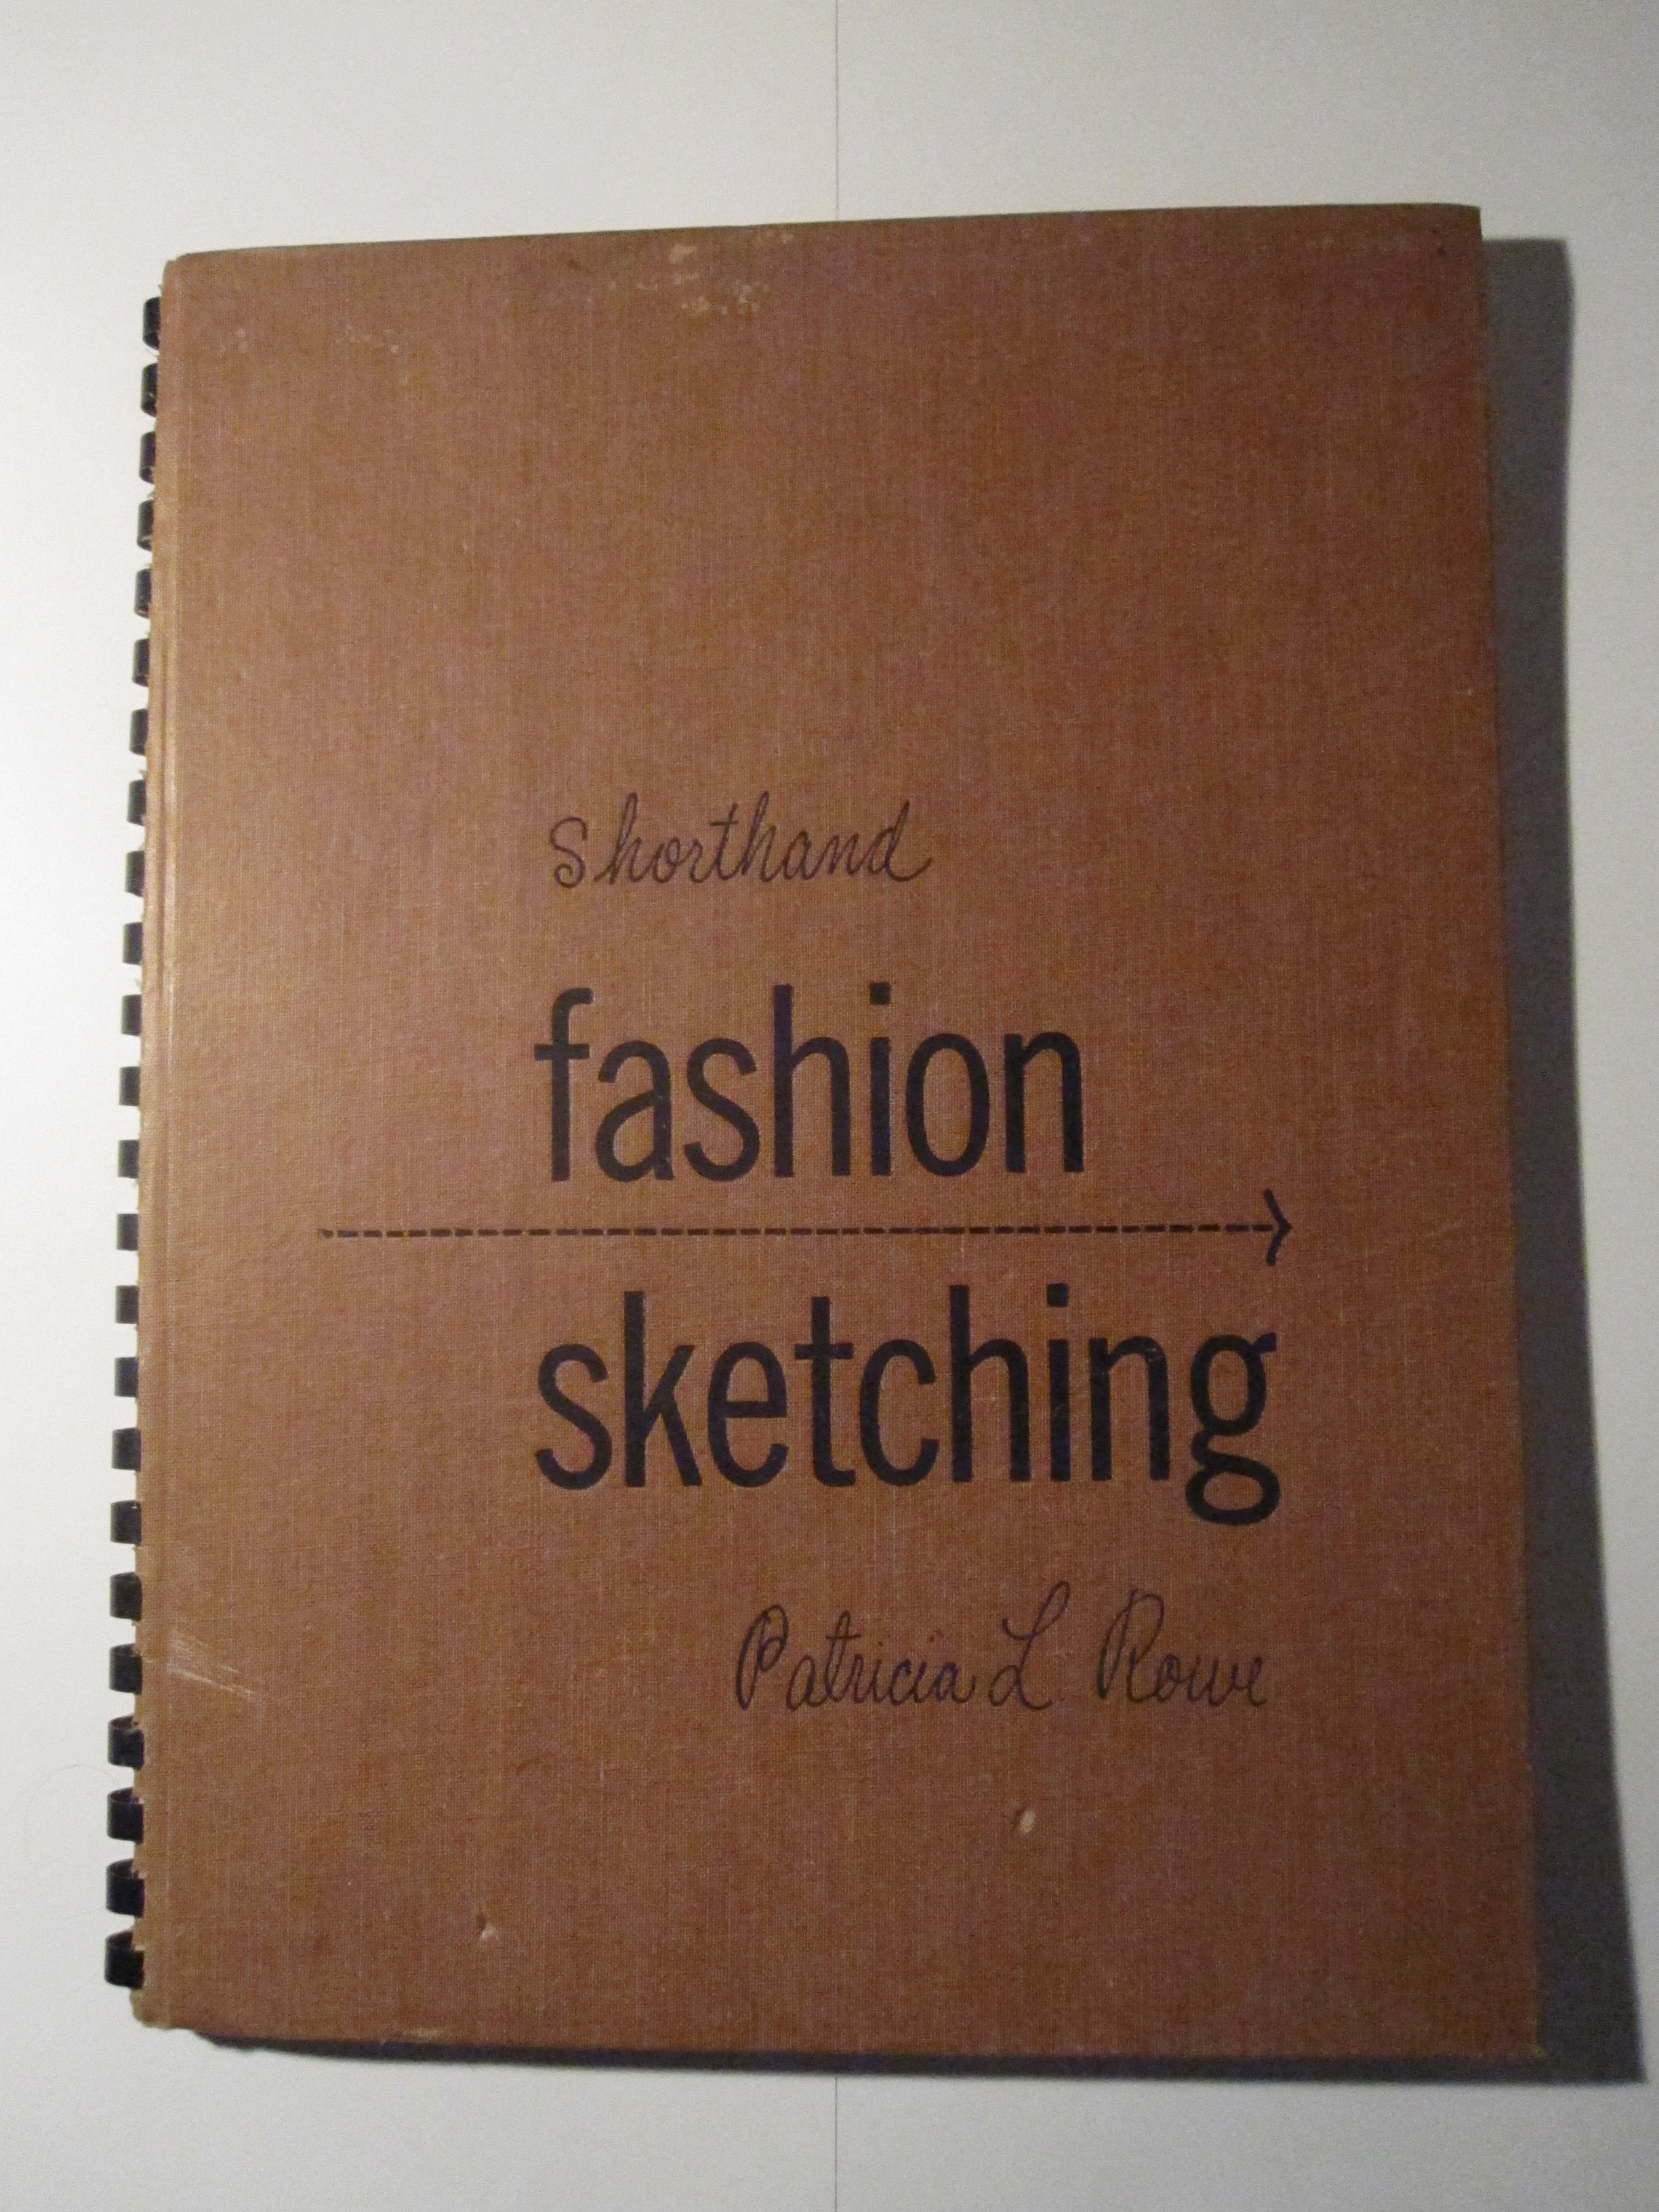 Cover of Shorthand Fashion Sketching by Patricia